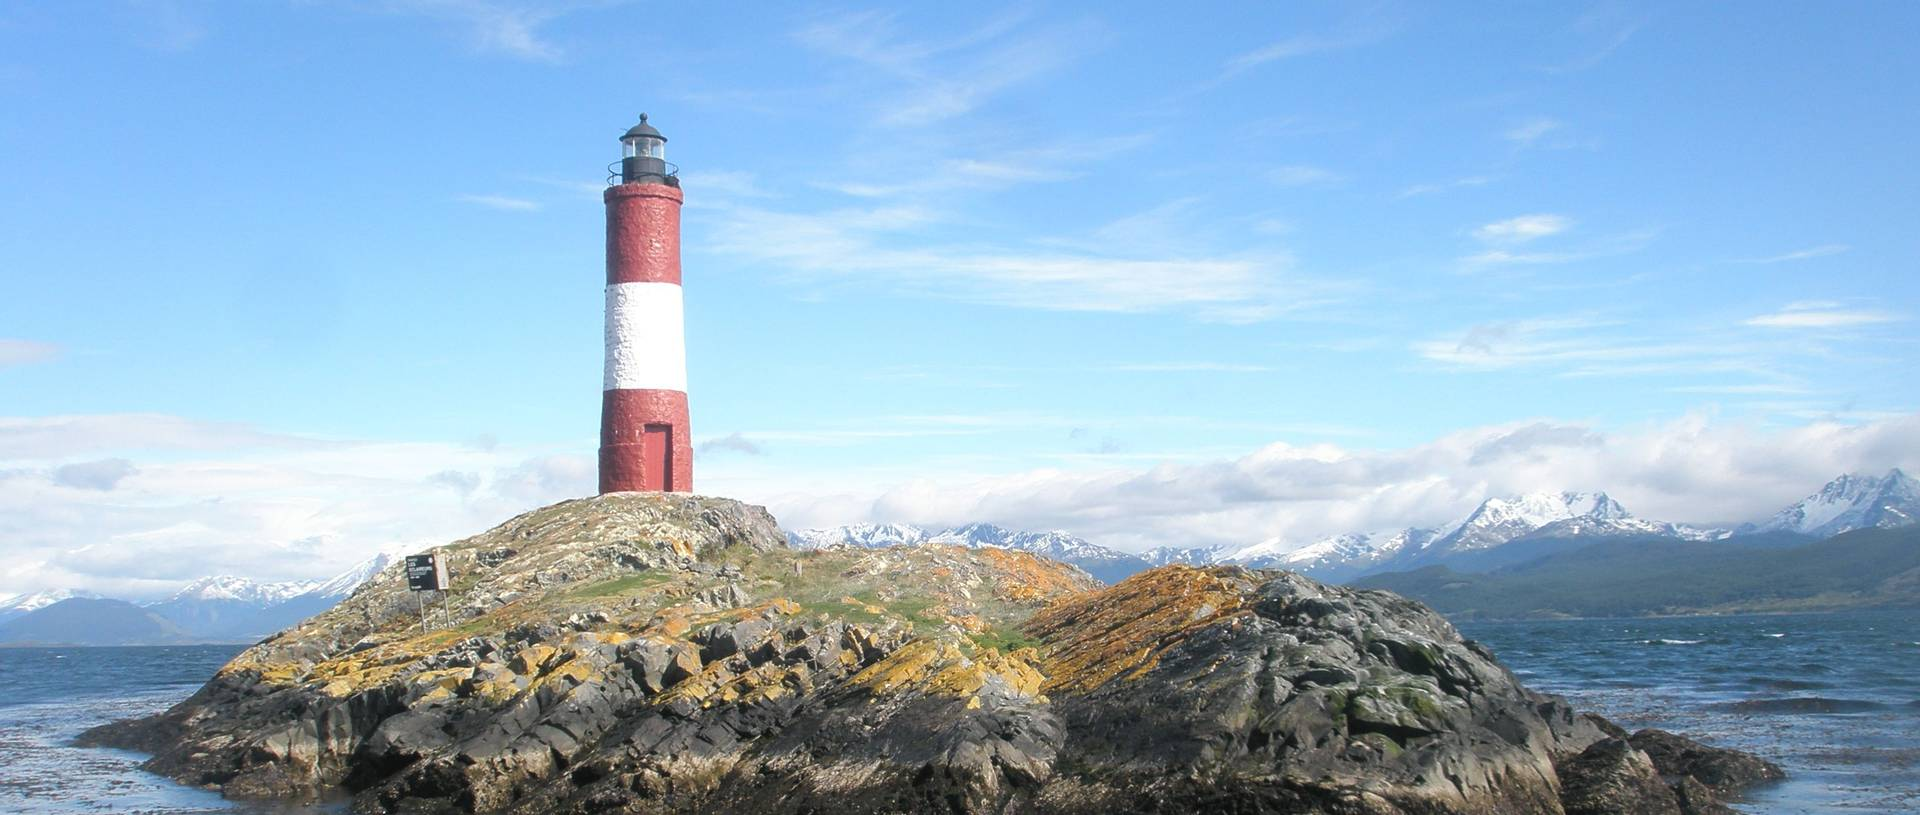 Lighthouse, Beagle Channel